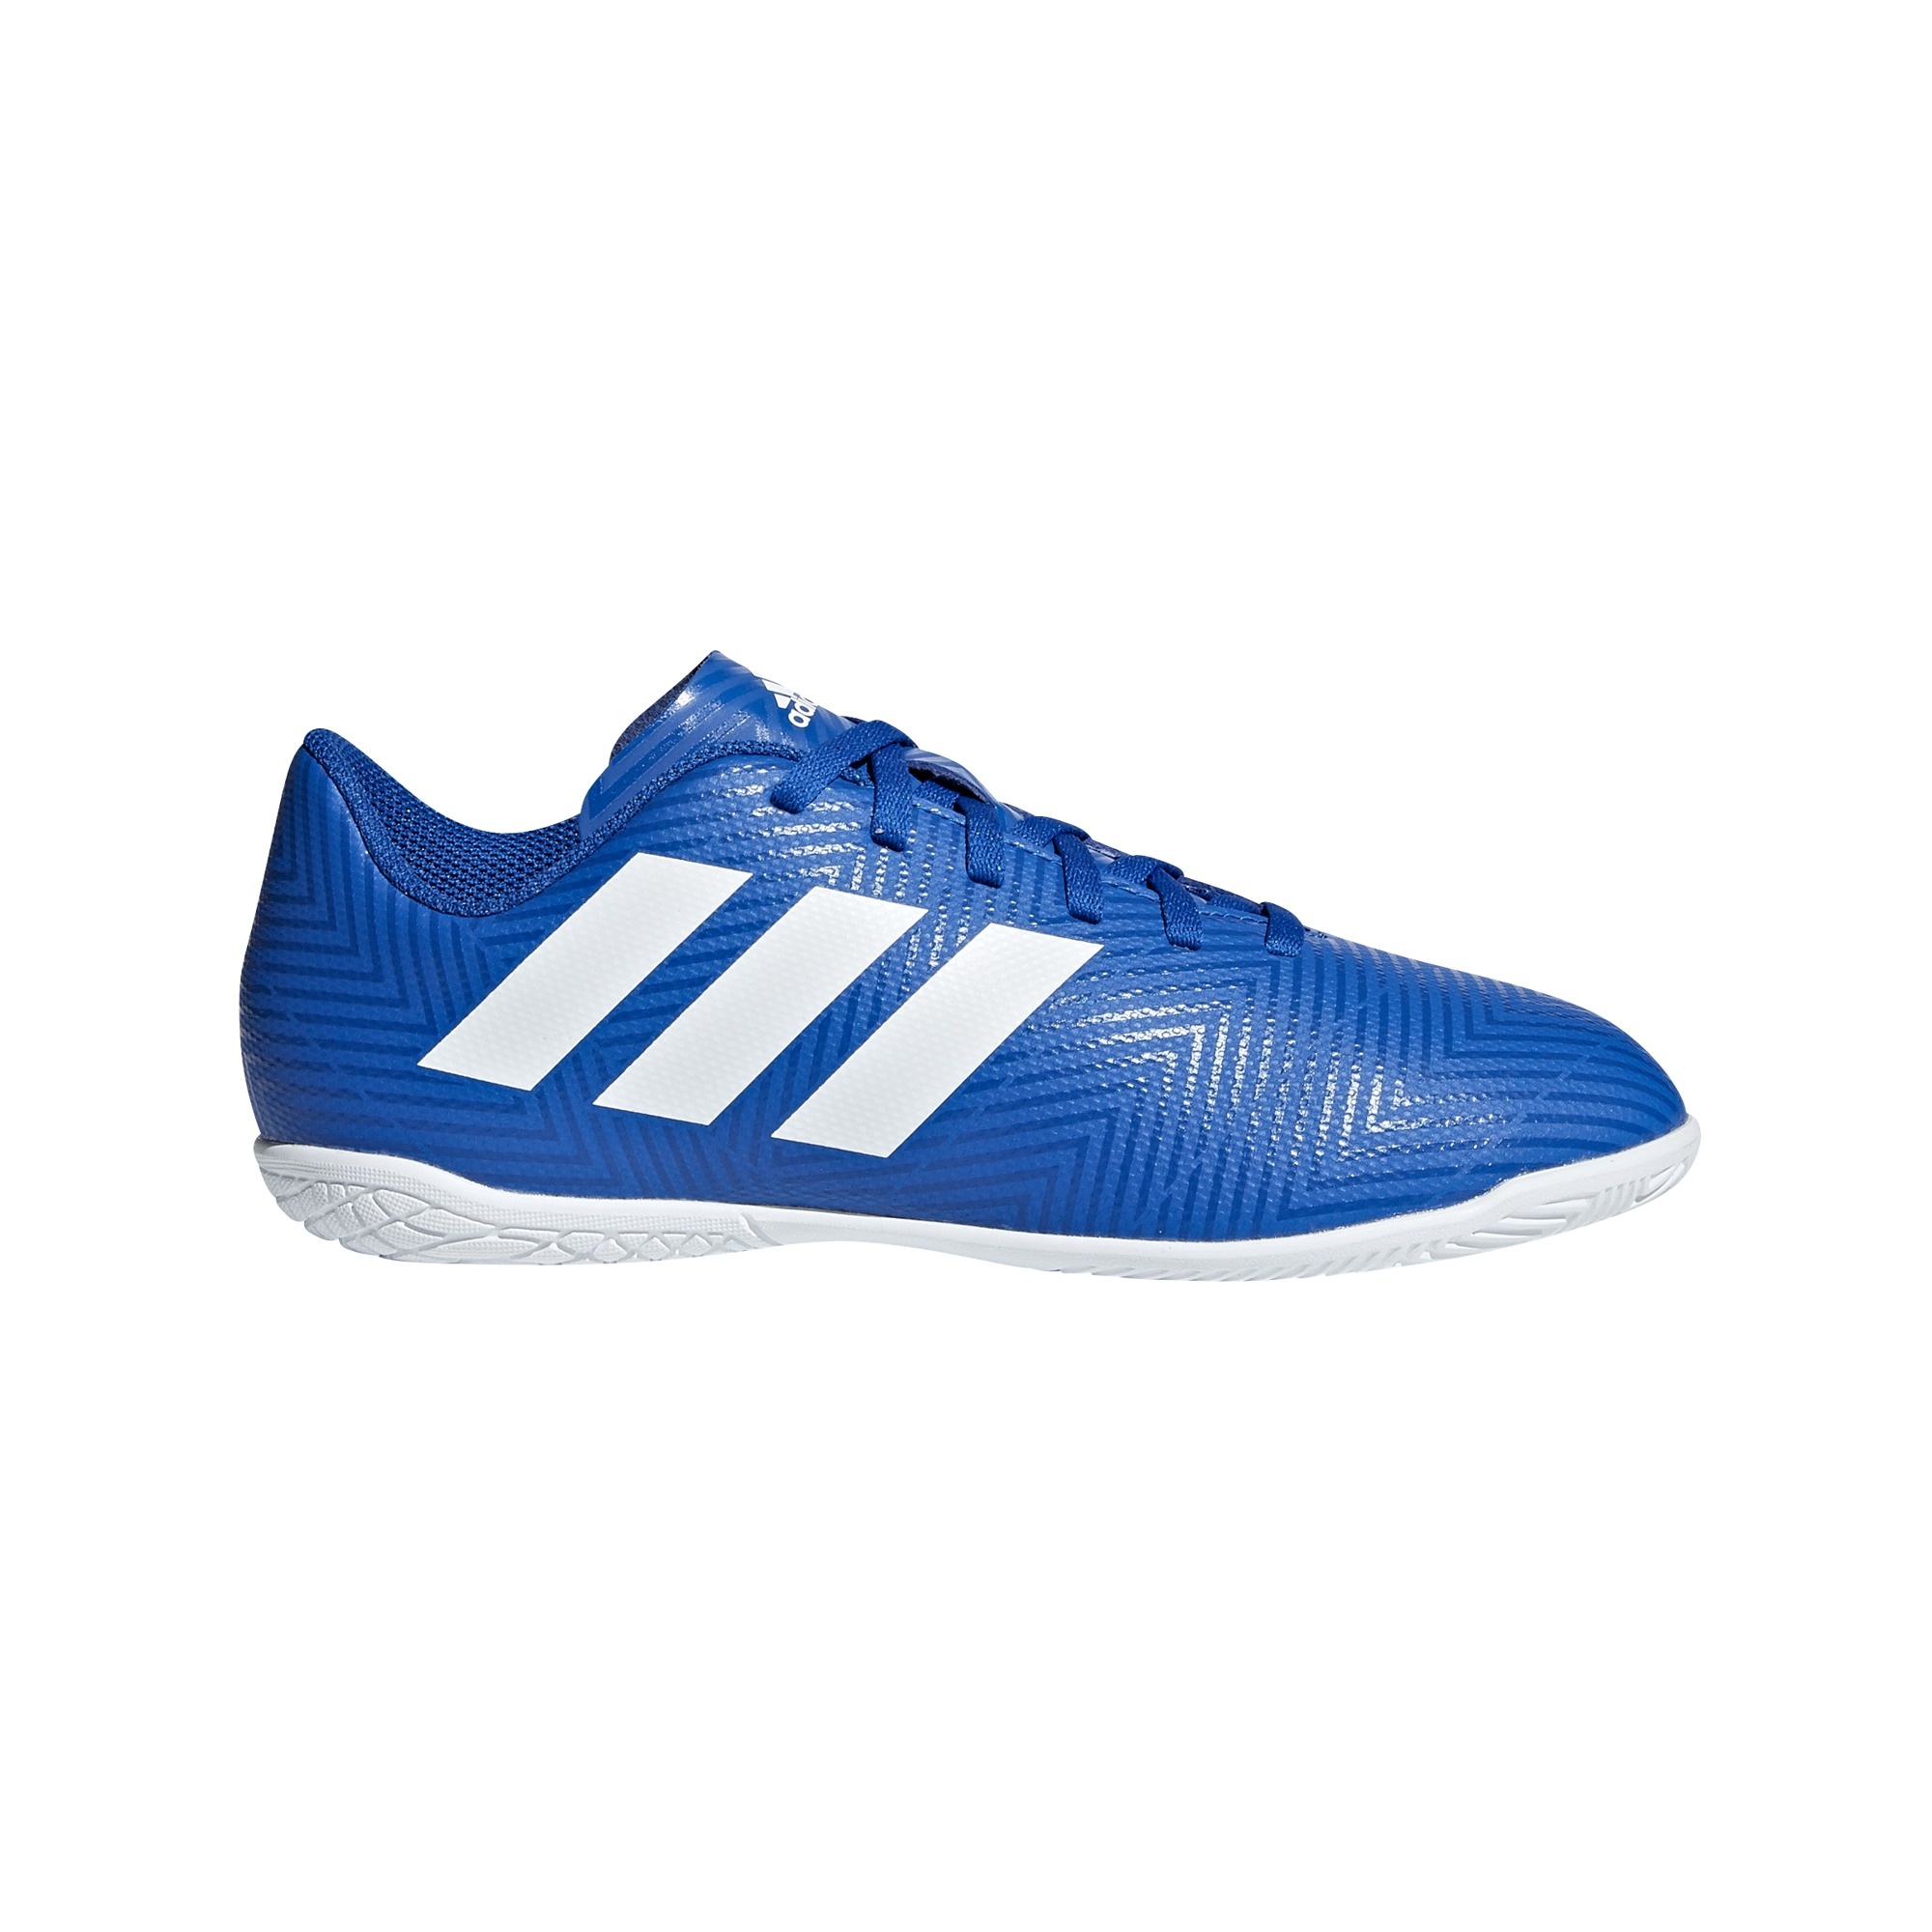 official photos 0f875 3d132 Soccer Solution Store  Imdoor Boots Adidas Nemeziz Tango 18.